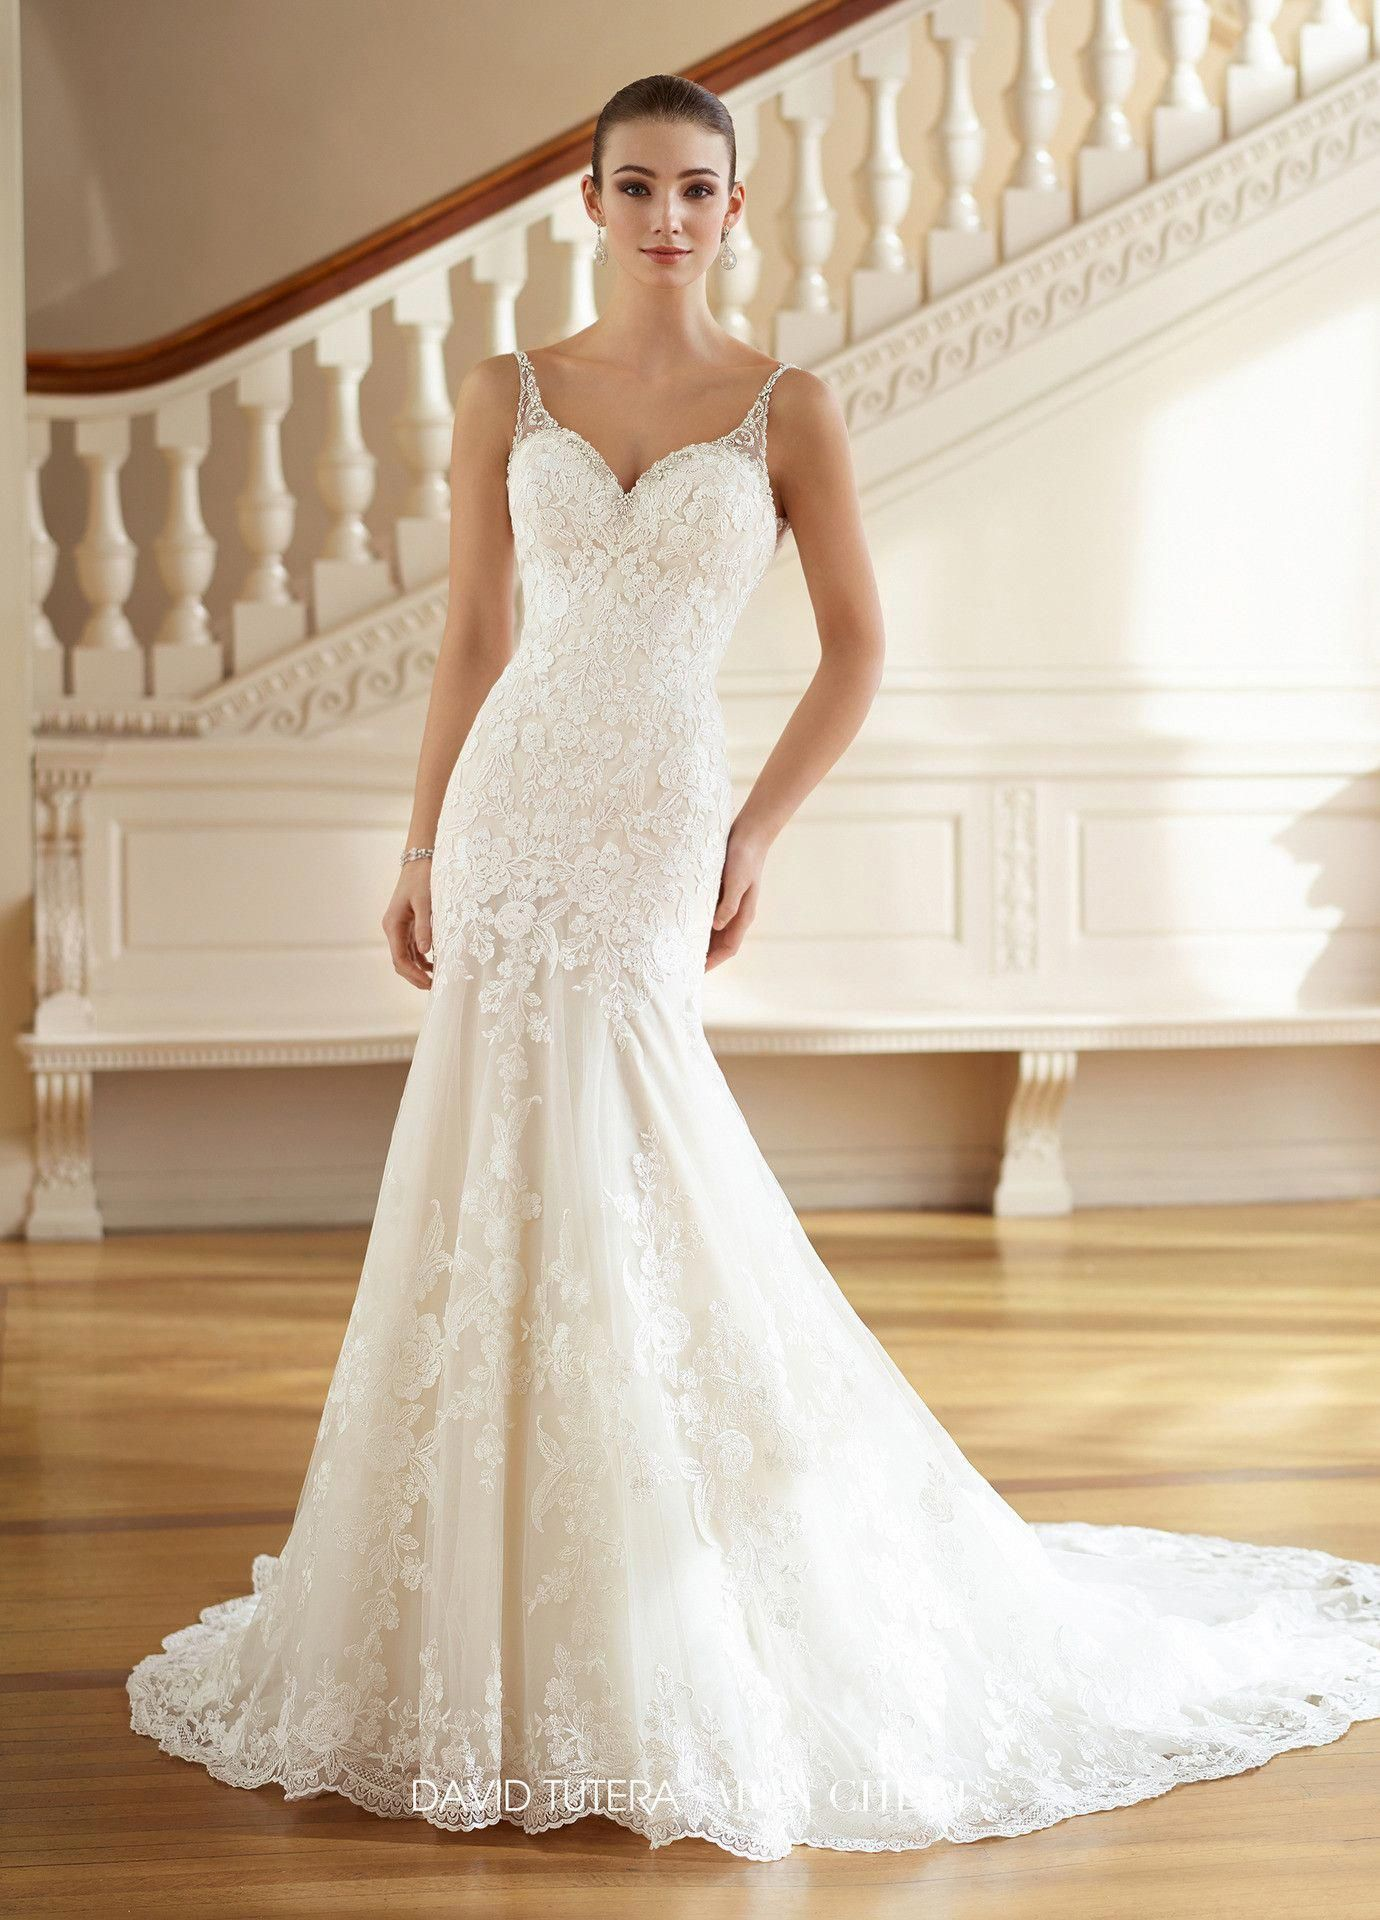 Beautiful Wedding Dresses Wedding Dresses Under 100 Wedd8ng